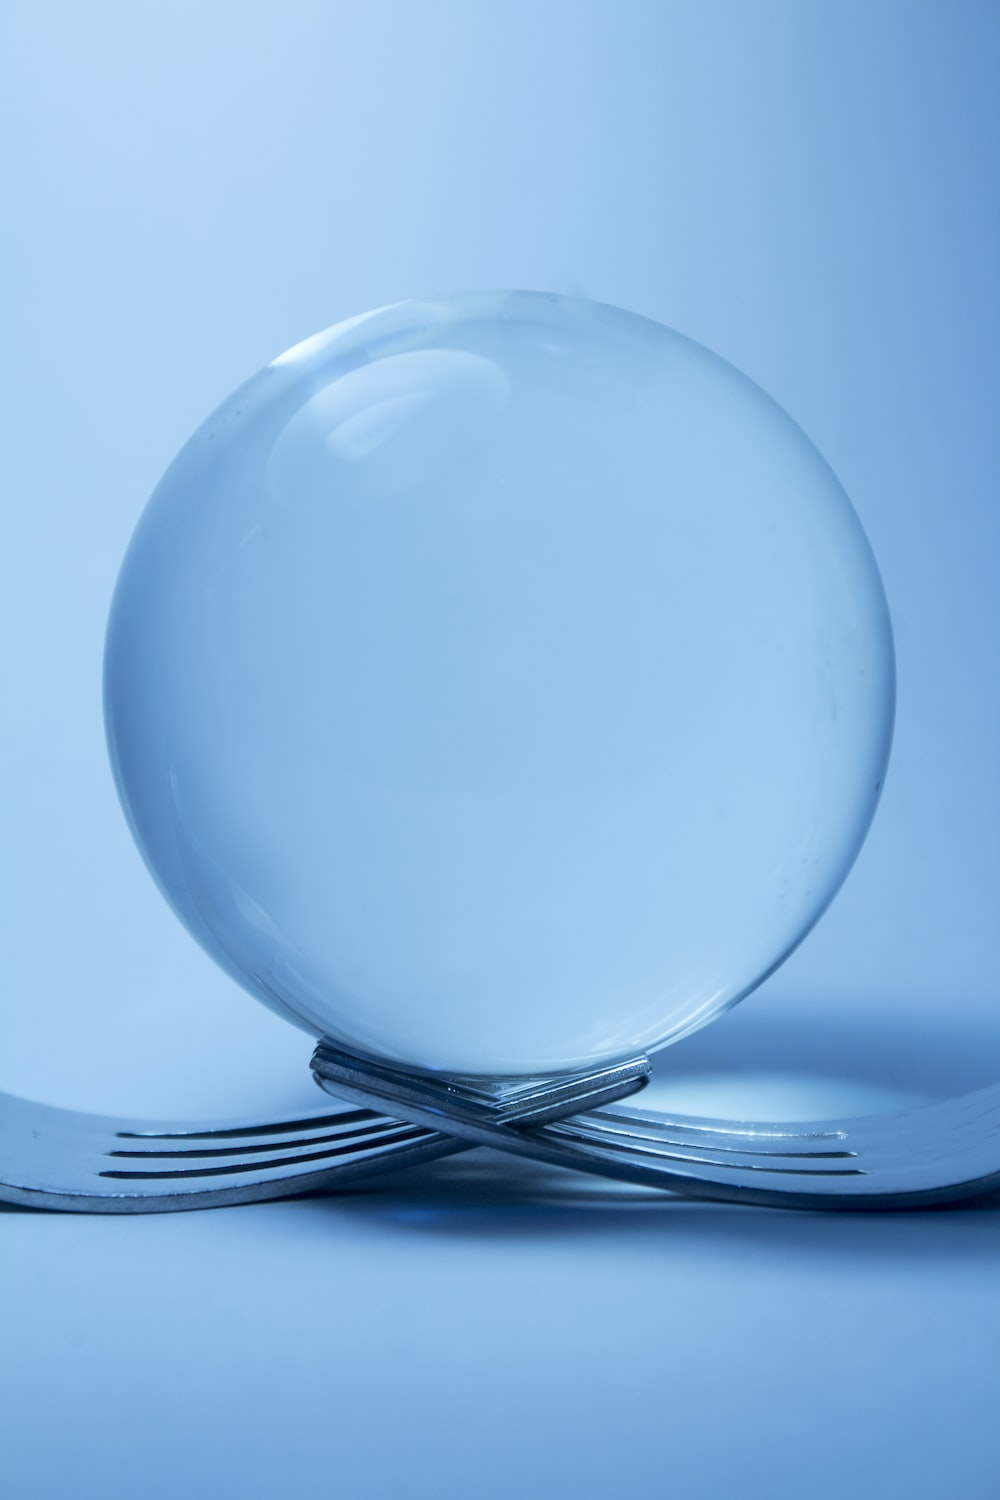 clear glass ball on top of two forks